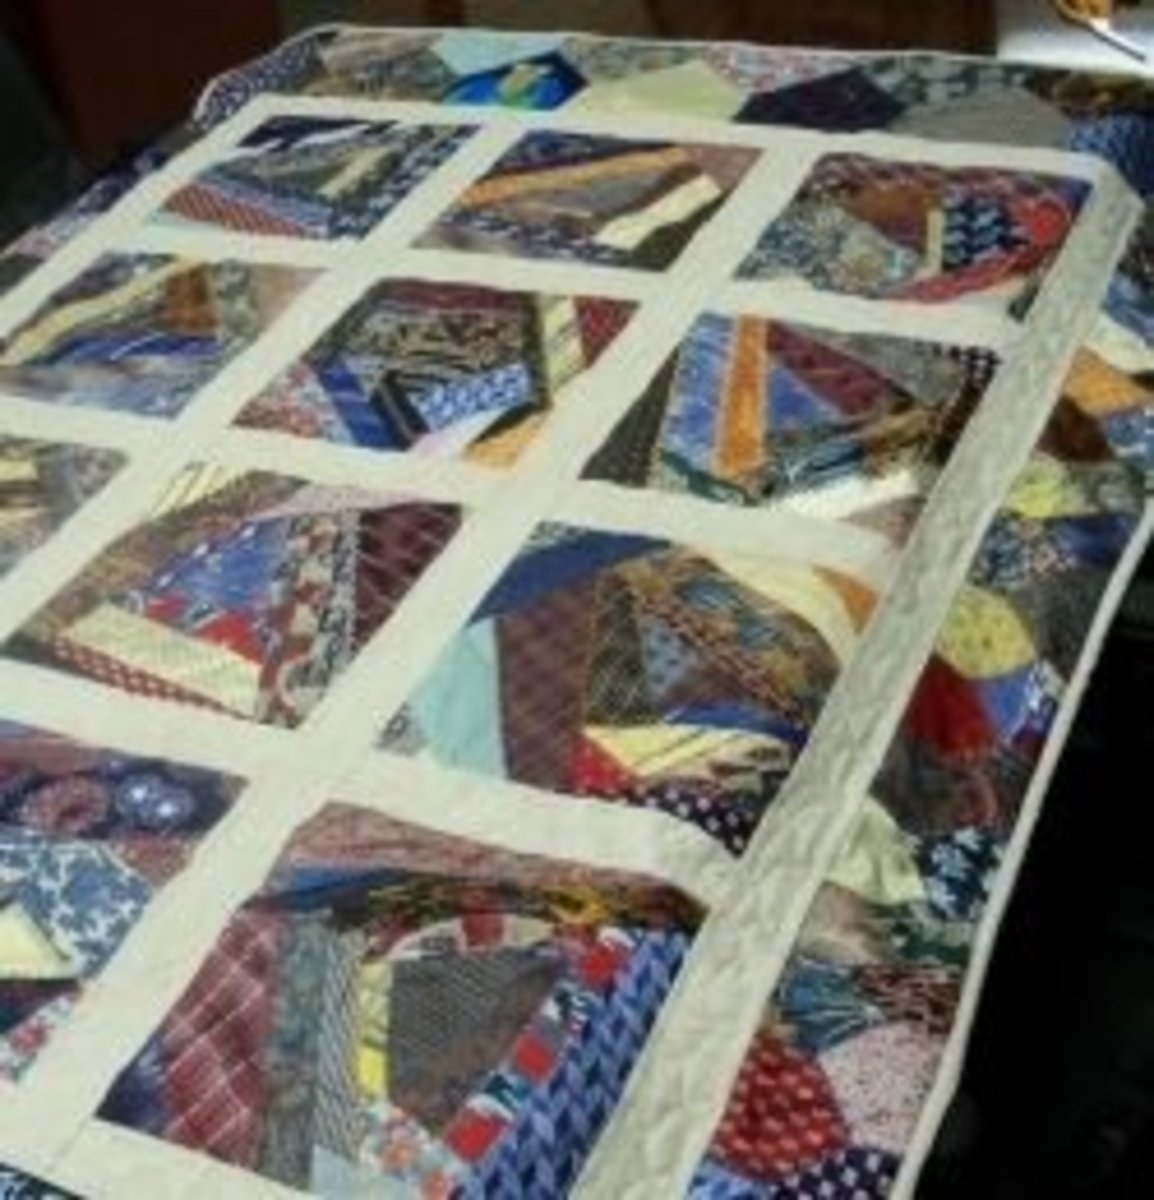 Crazy quilting is my absolute favorite kind of quilting and it makes for hours of fun simply looking at how the patterns (or lack of patterns) come together. This crazy quilt is a very fun use of neckties, made more crazy with a variety of patterns.